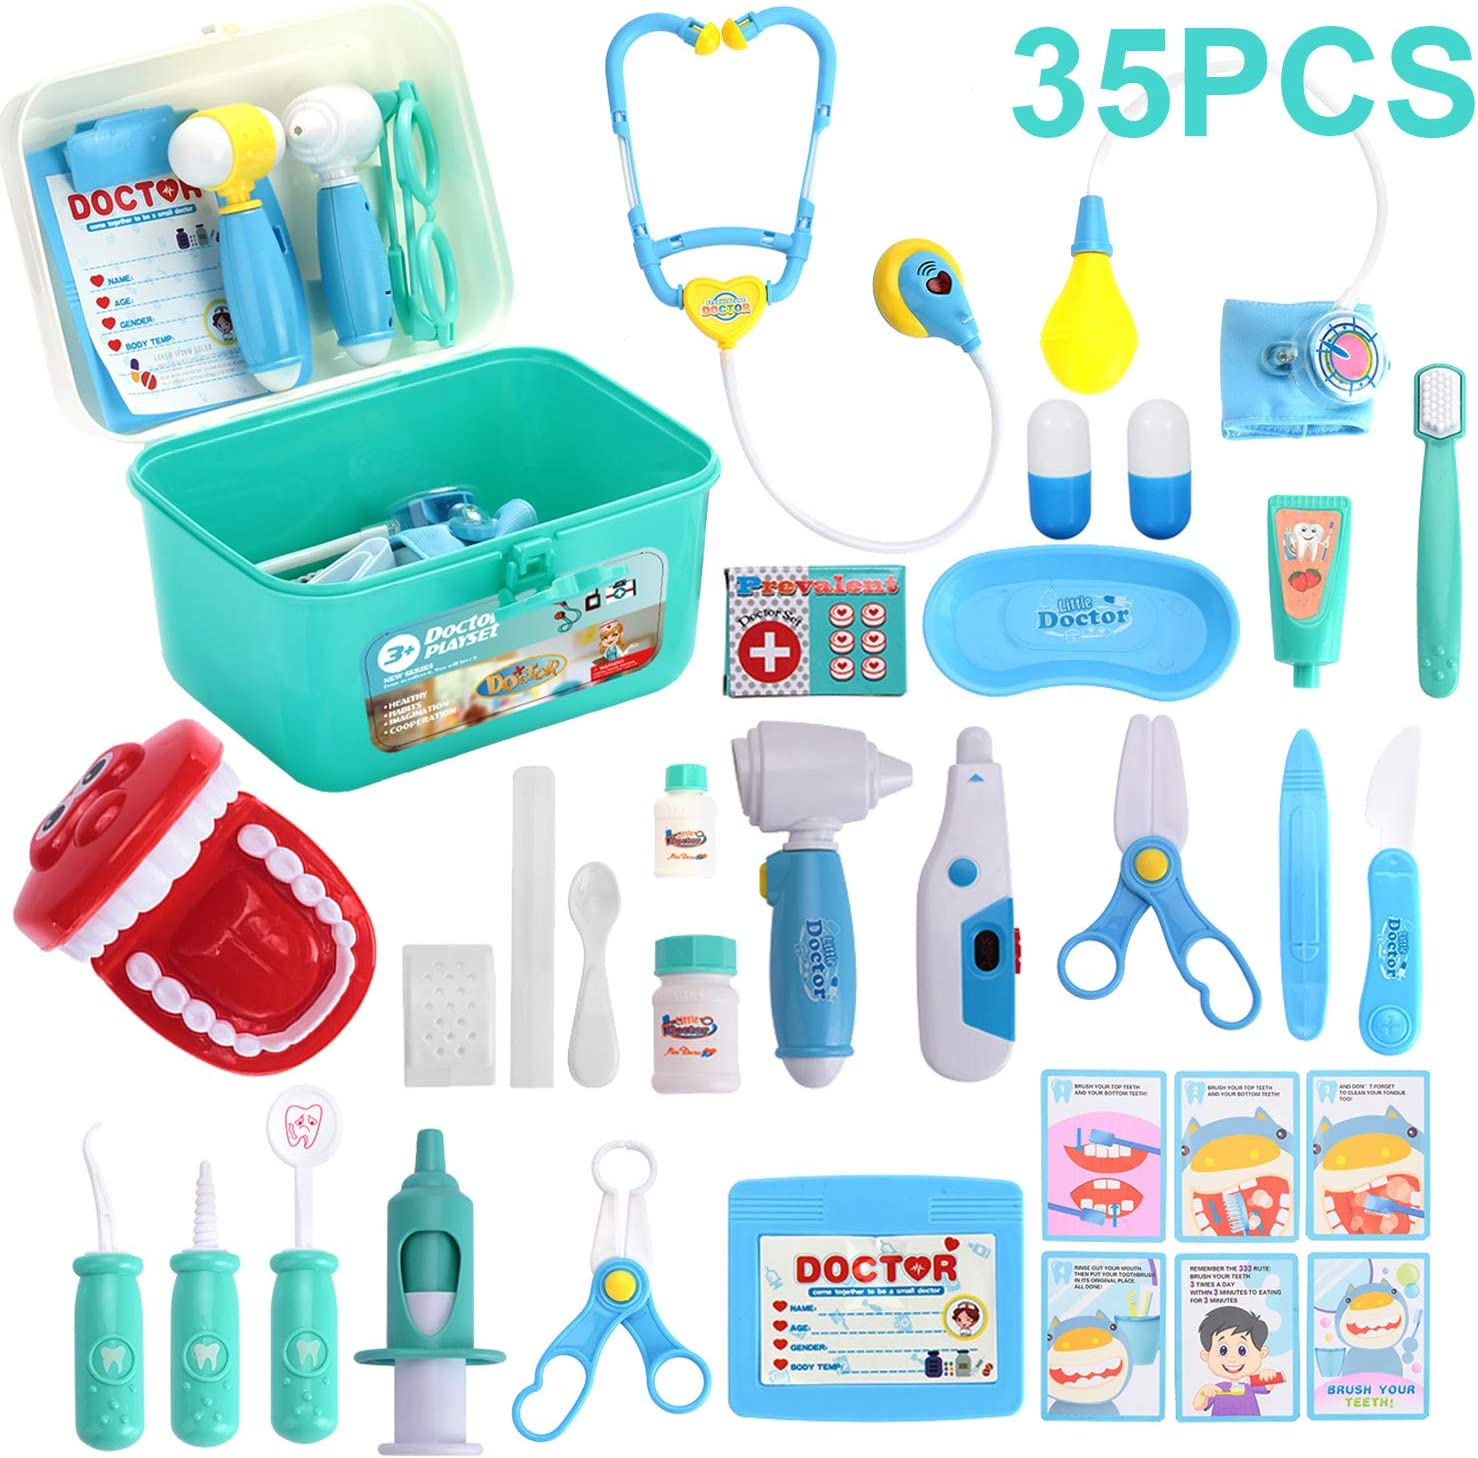 Top 12 Best Toy Doctor Kits (2020 Reviews & Buying Guide) 12